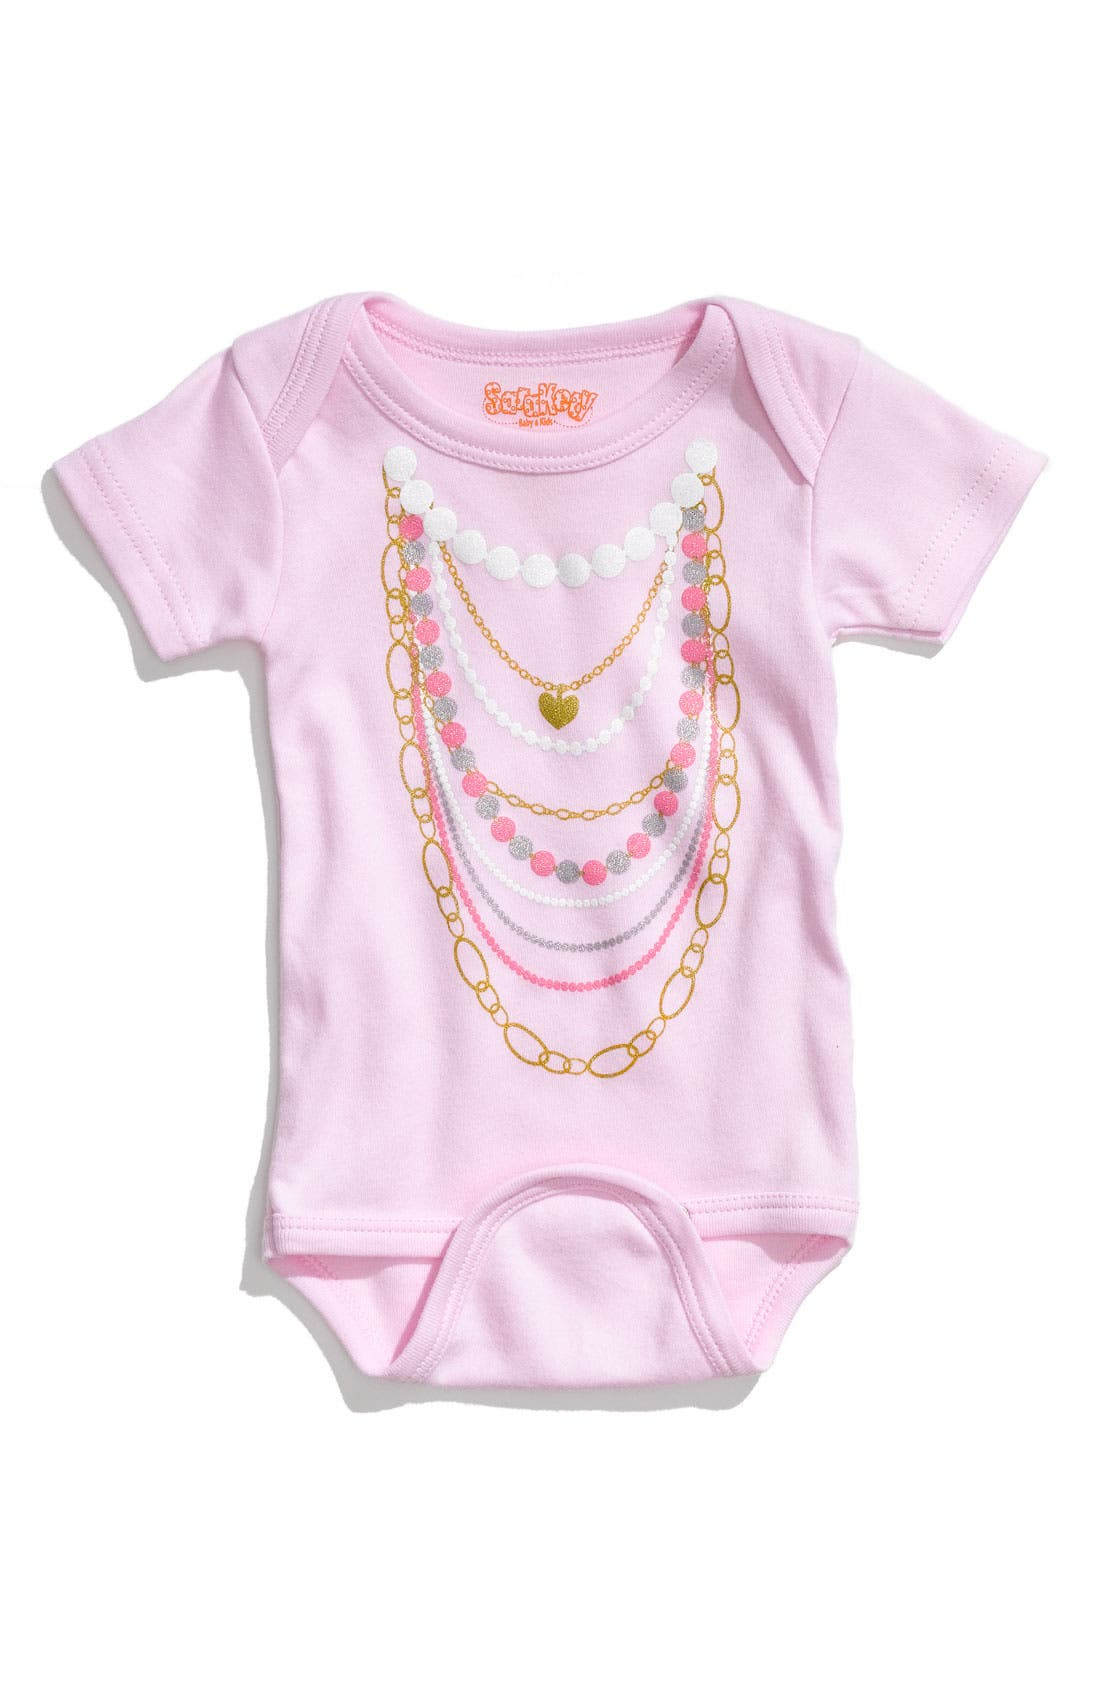 Sara Kety Baby & Kids 'Necklaces' Bodysuit (Infant)